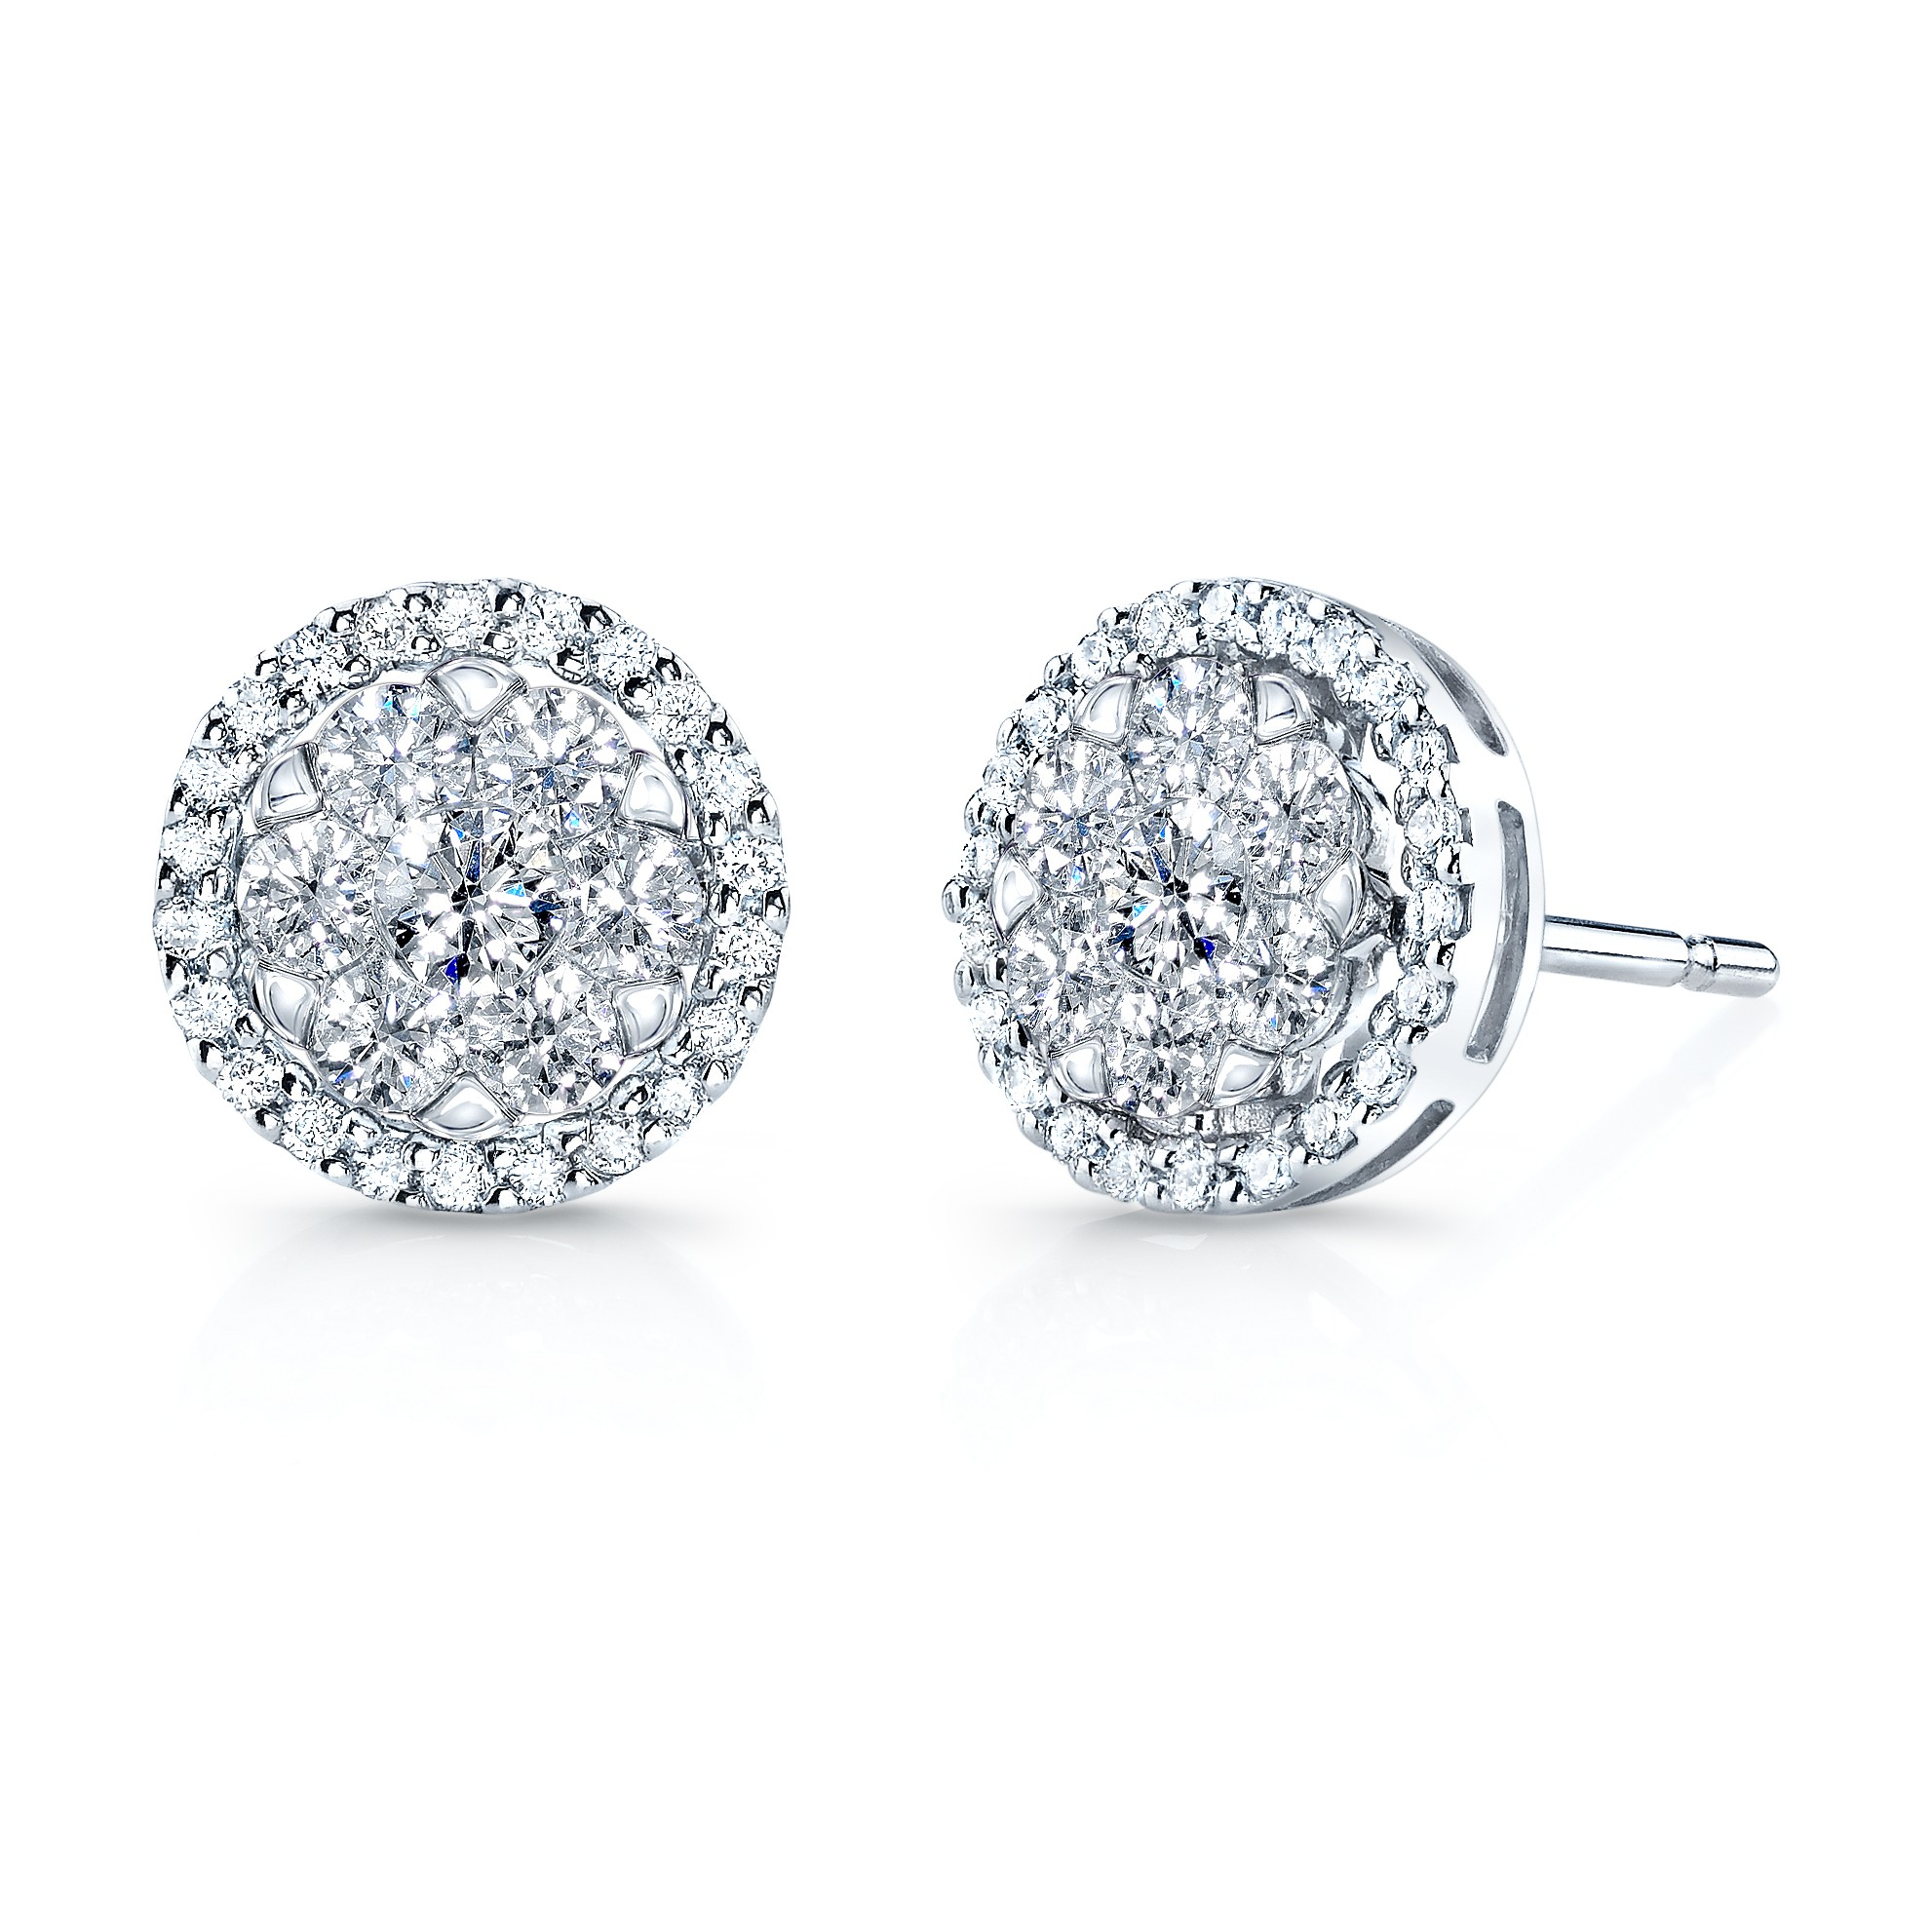 sell your diamond studs and earrings to us